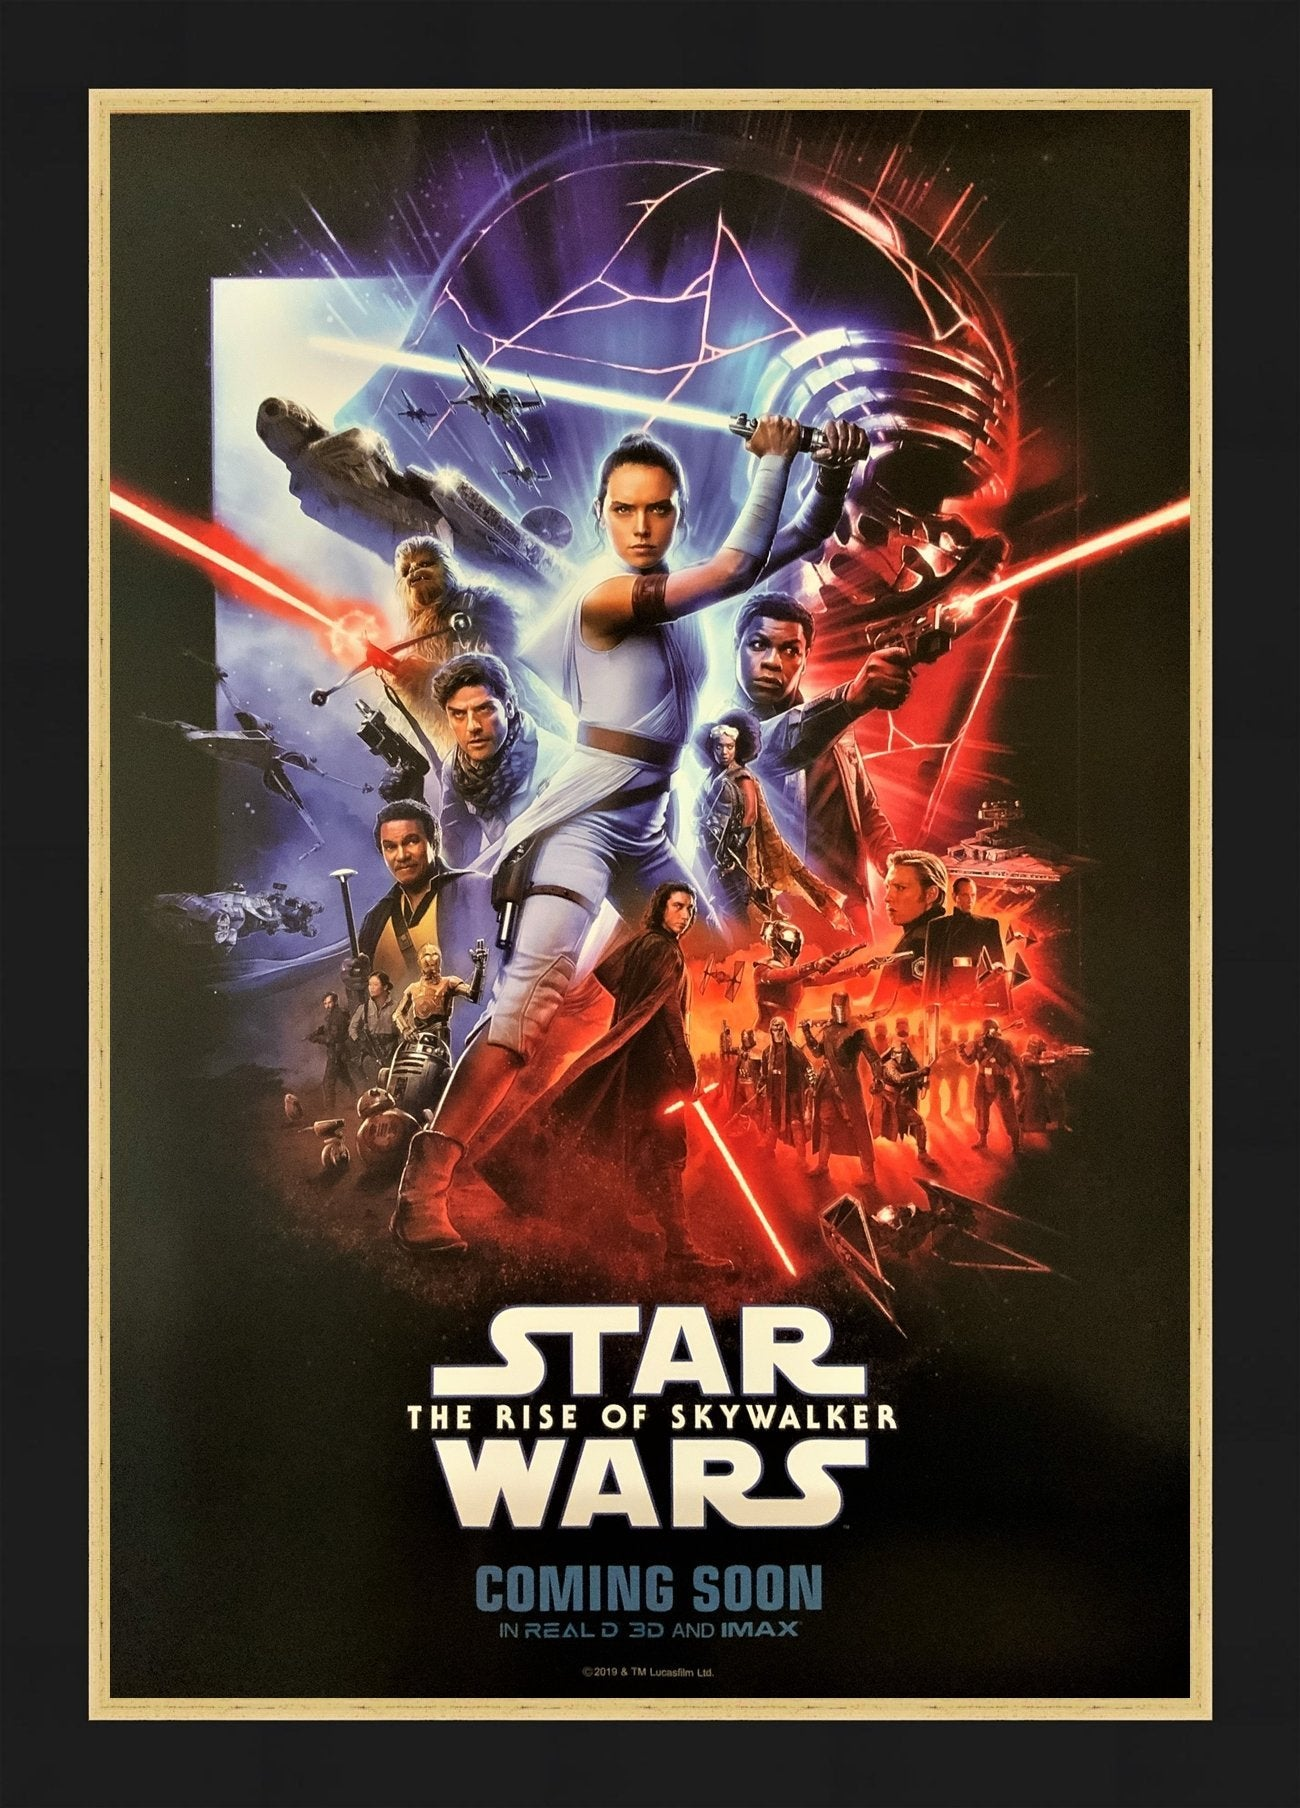 An original Real D / IMAX movie poster for Star Wars The Rise of Skywalker